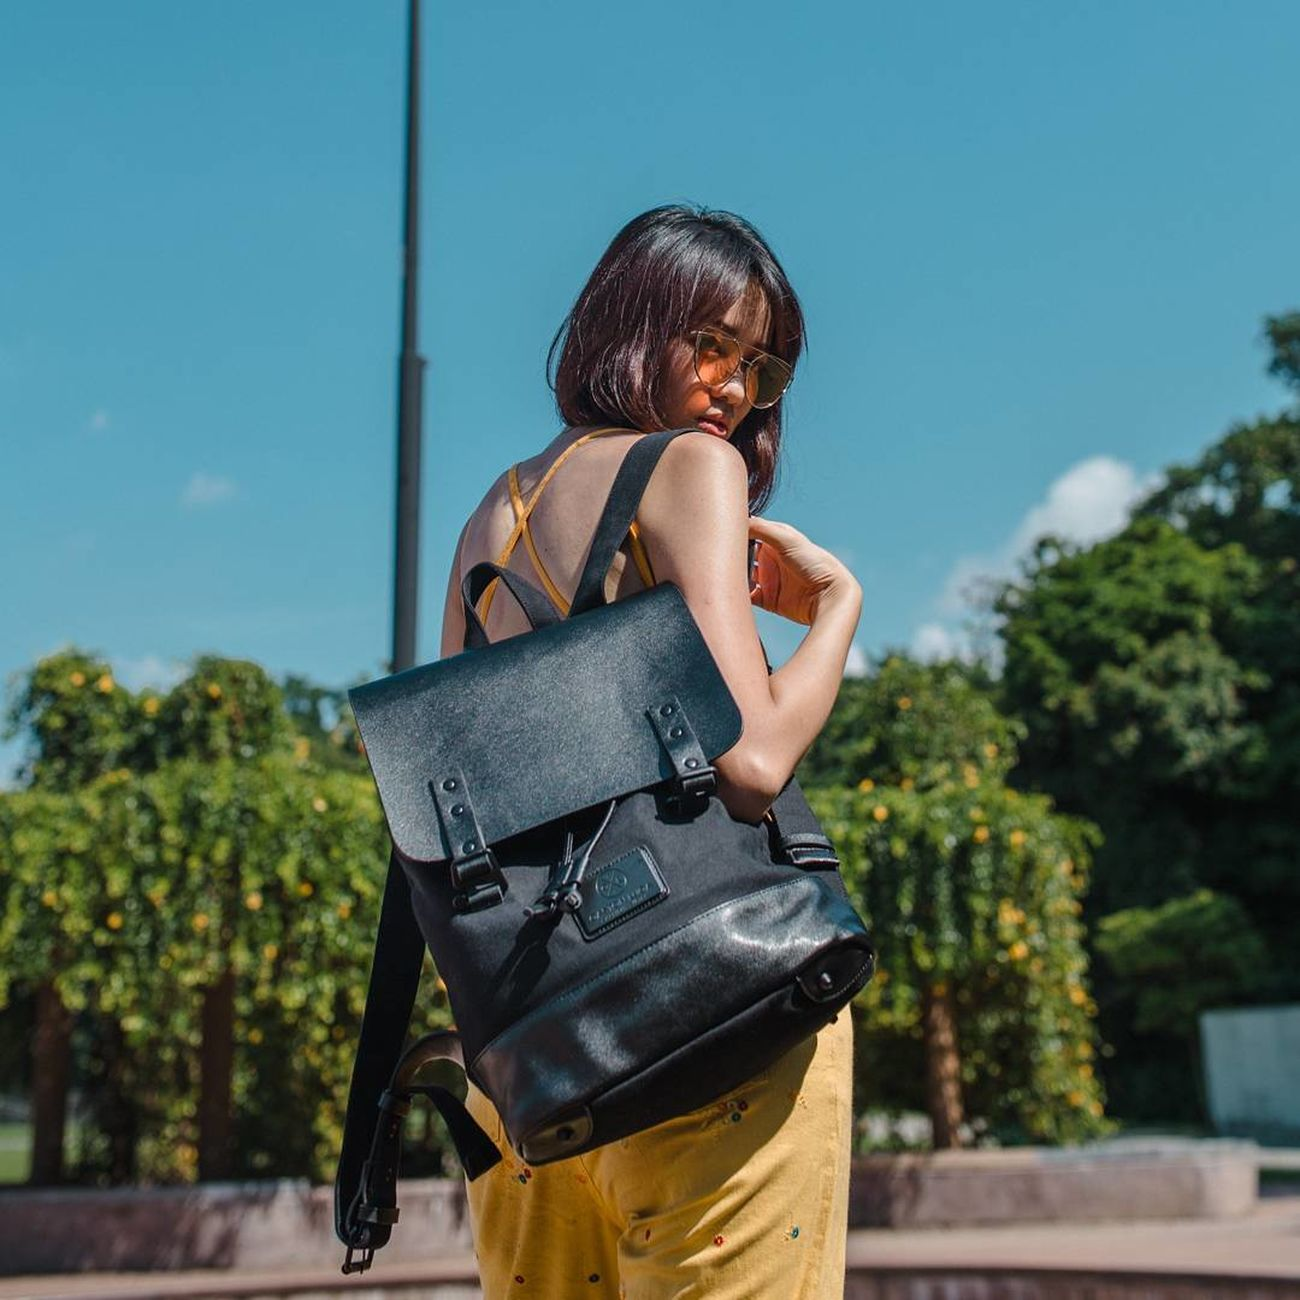 """This backpack from Gaston Luga is my new work bag because it looks so good and it can fit my 15"""" Macbook Pro (such a dealbreaker heh). They come with free shipping + 20% off as tax rebate (to NON-EU countries) + an additional 15% off the remainder if you use my code """"audreyk15""""! Check it out at www.gastonluga.com 🙌🏻🙌🏻 One Woman Only Women Outdoors Clean Portrait Of A Woman Portrait Photography Women Around The World Beautiful People Portrait Light Collection Light Blue Blue Sky Sunglasses Beautiful Girl Midday Tank Top Yellow Colorful Colorsplash Color Explosion Summer Babe Backpacking"""